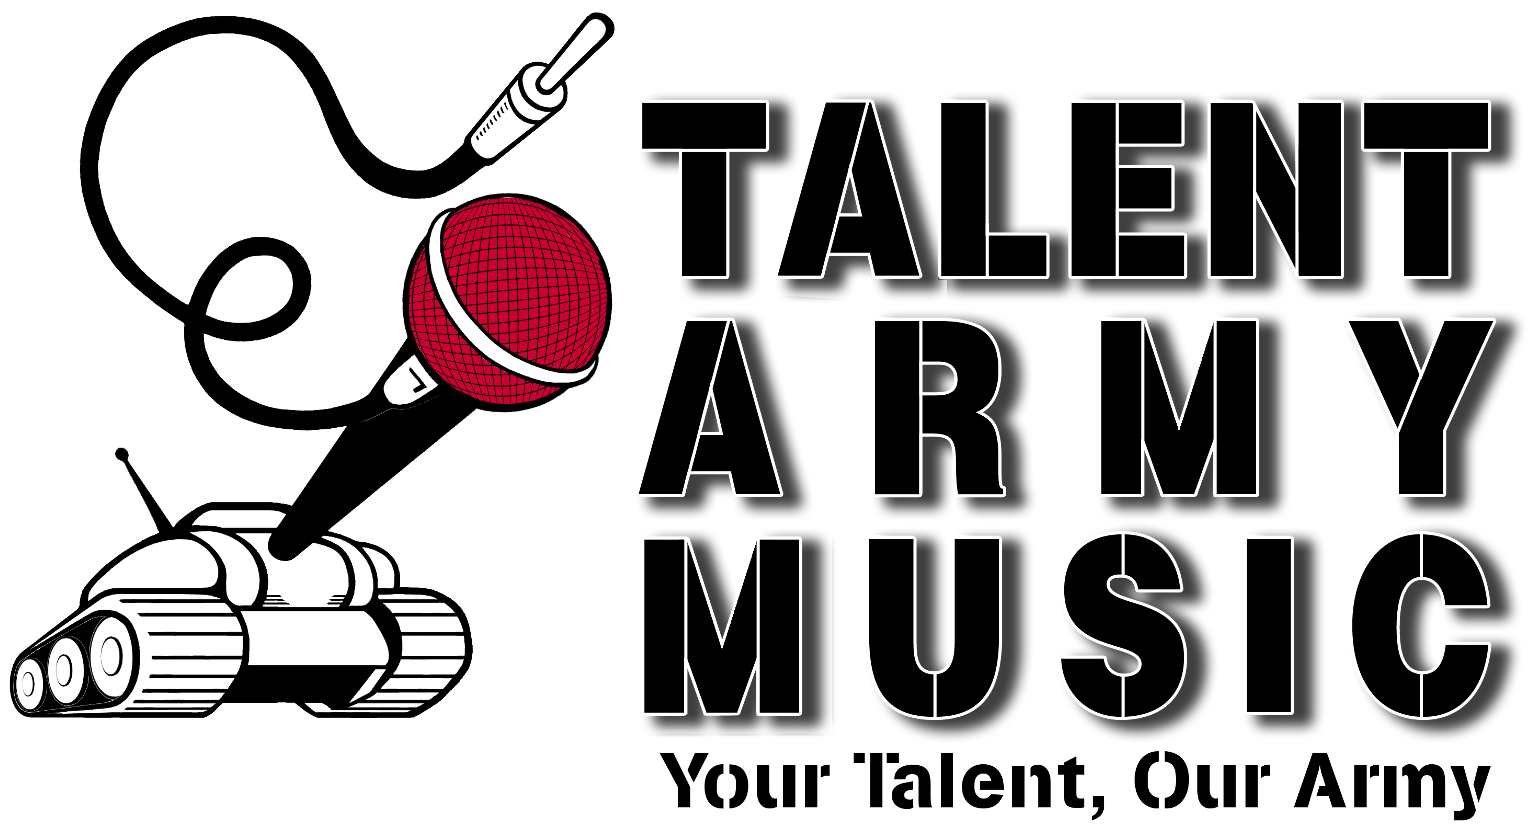 Talent Army Music: Your Talent, Our Army